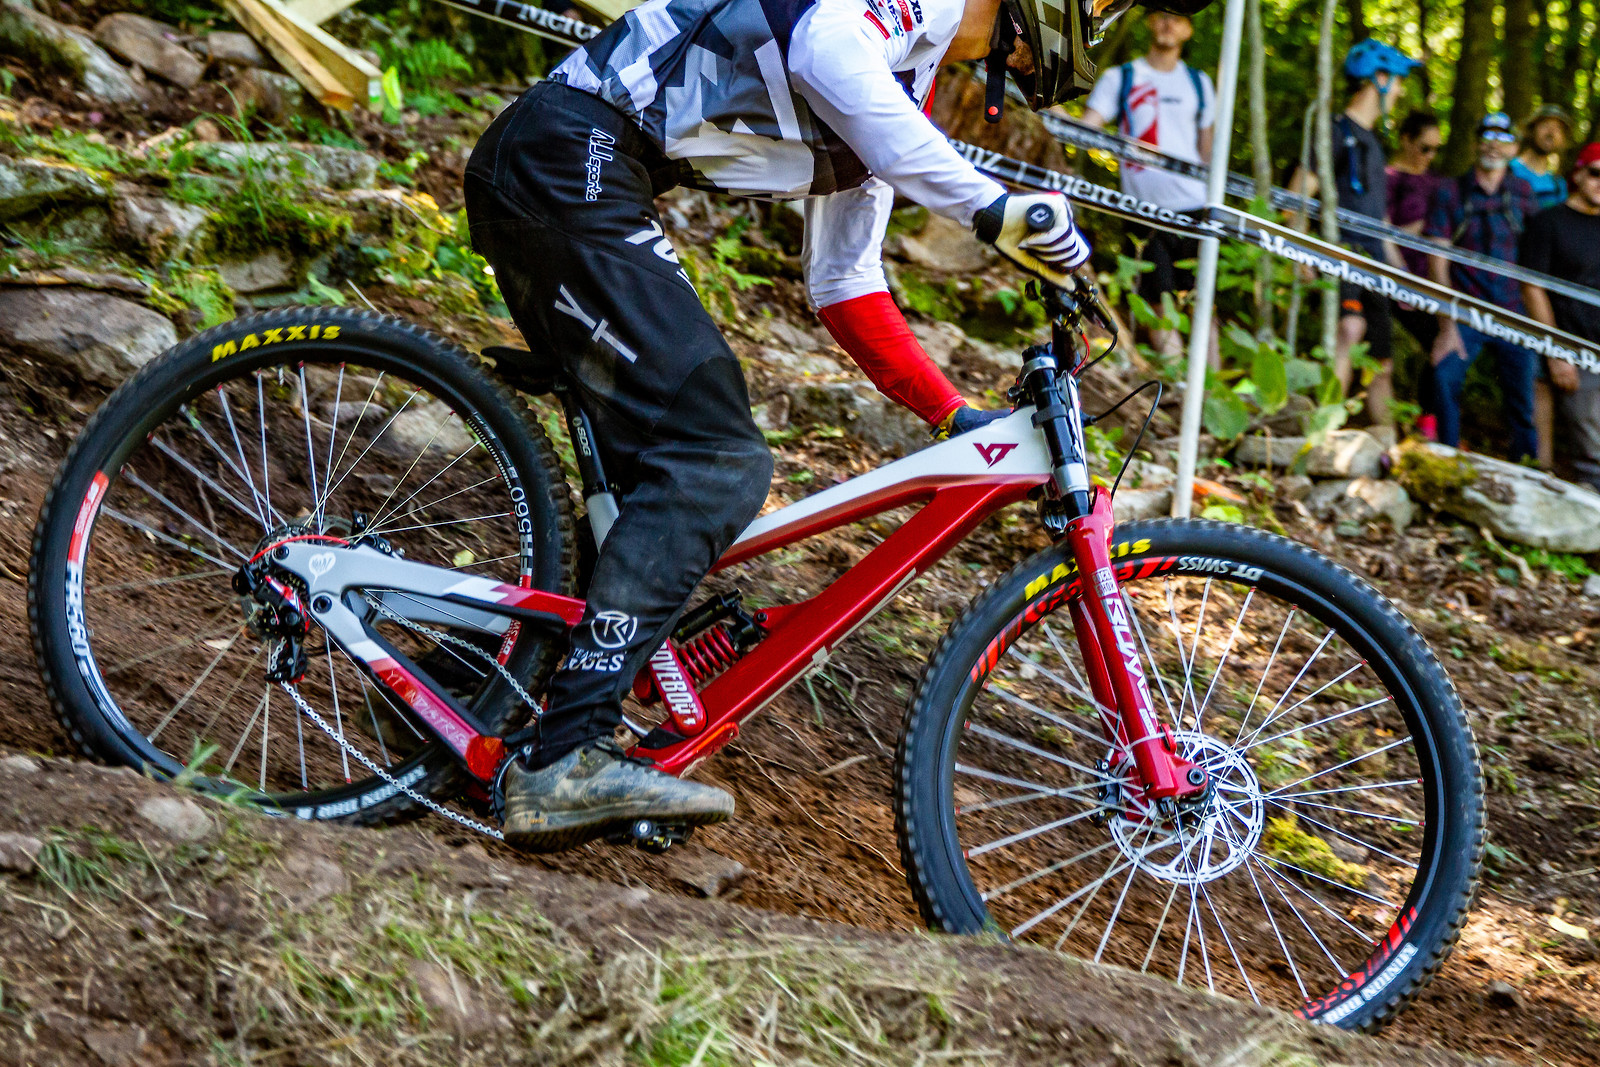 G-Out Project - Snowshoe World Cup Downhill - David Trummer - JackRice - Mountain Biking Pictures - Vital MTB